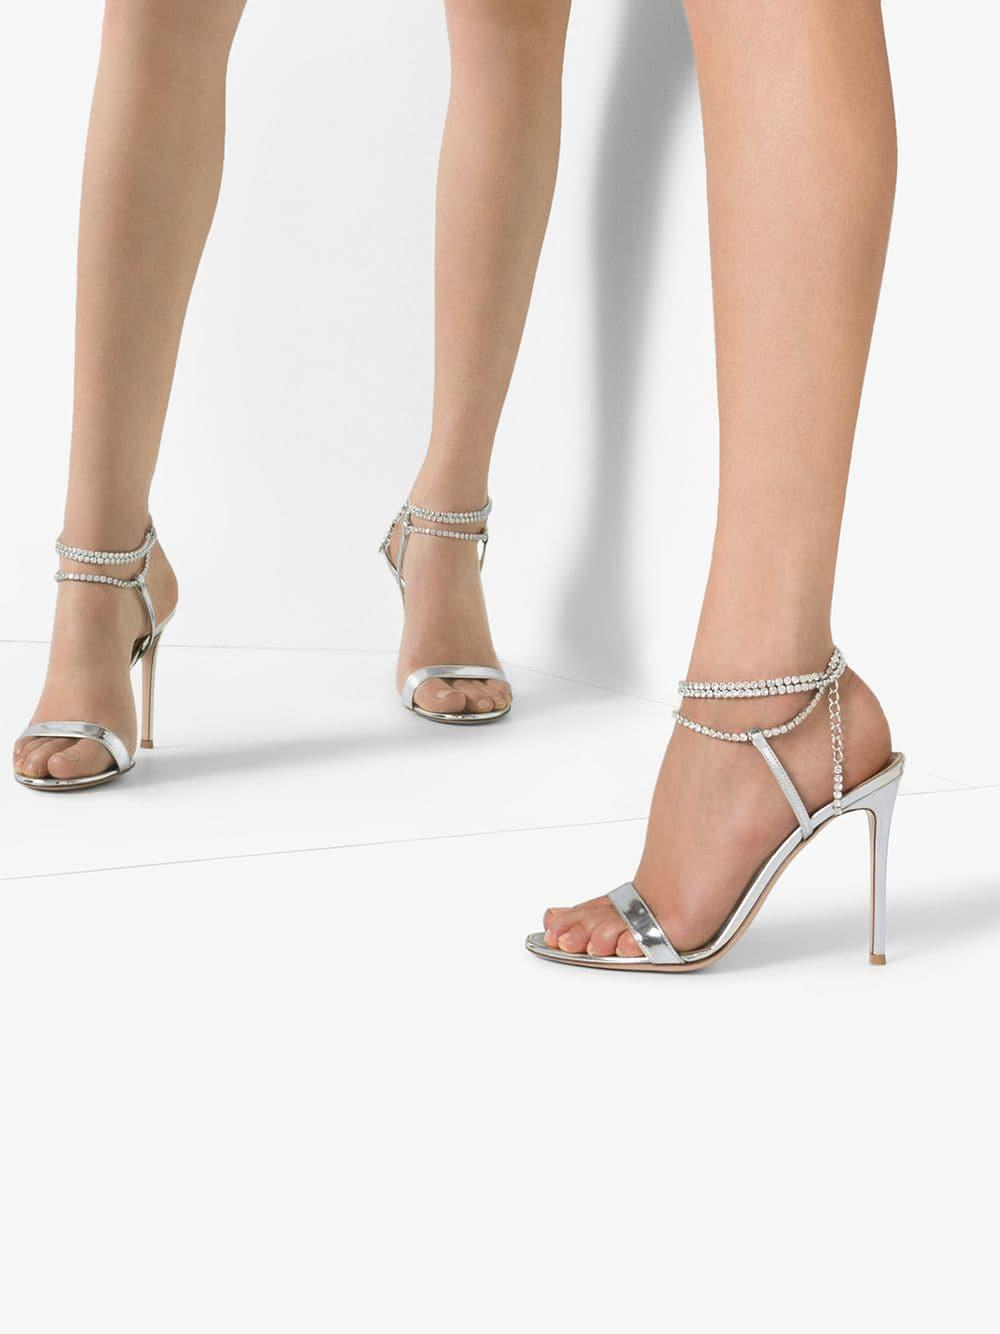 976da356d Gianvito Rossi - Silver Tennis 105 Crystal Metallic Sandals - Lyst. View  fullscreen